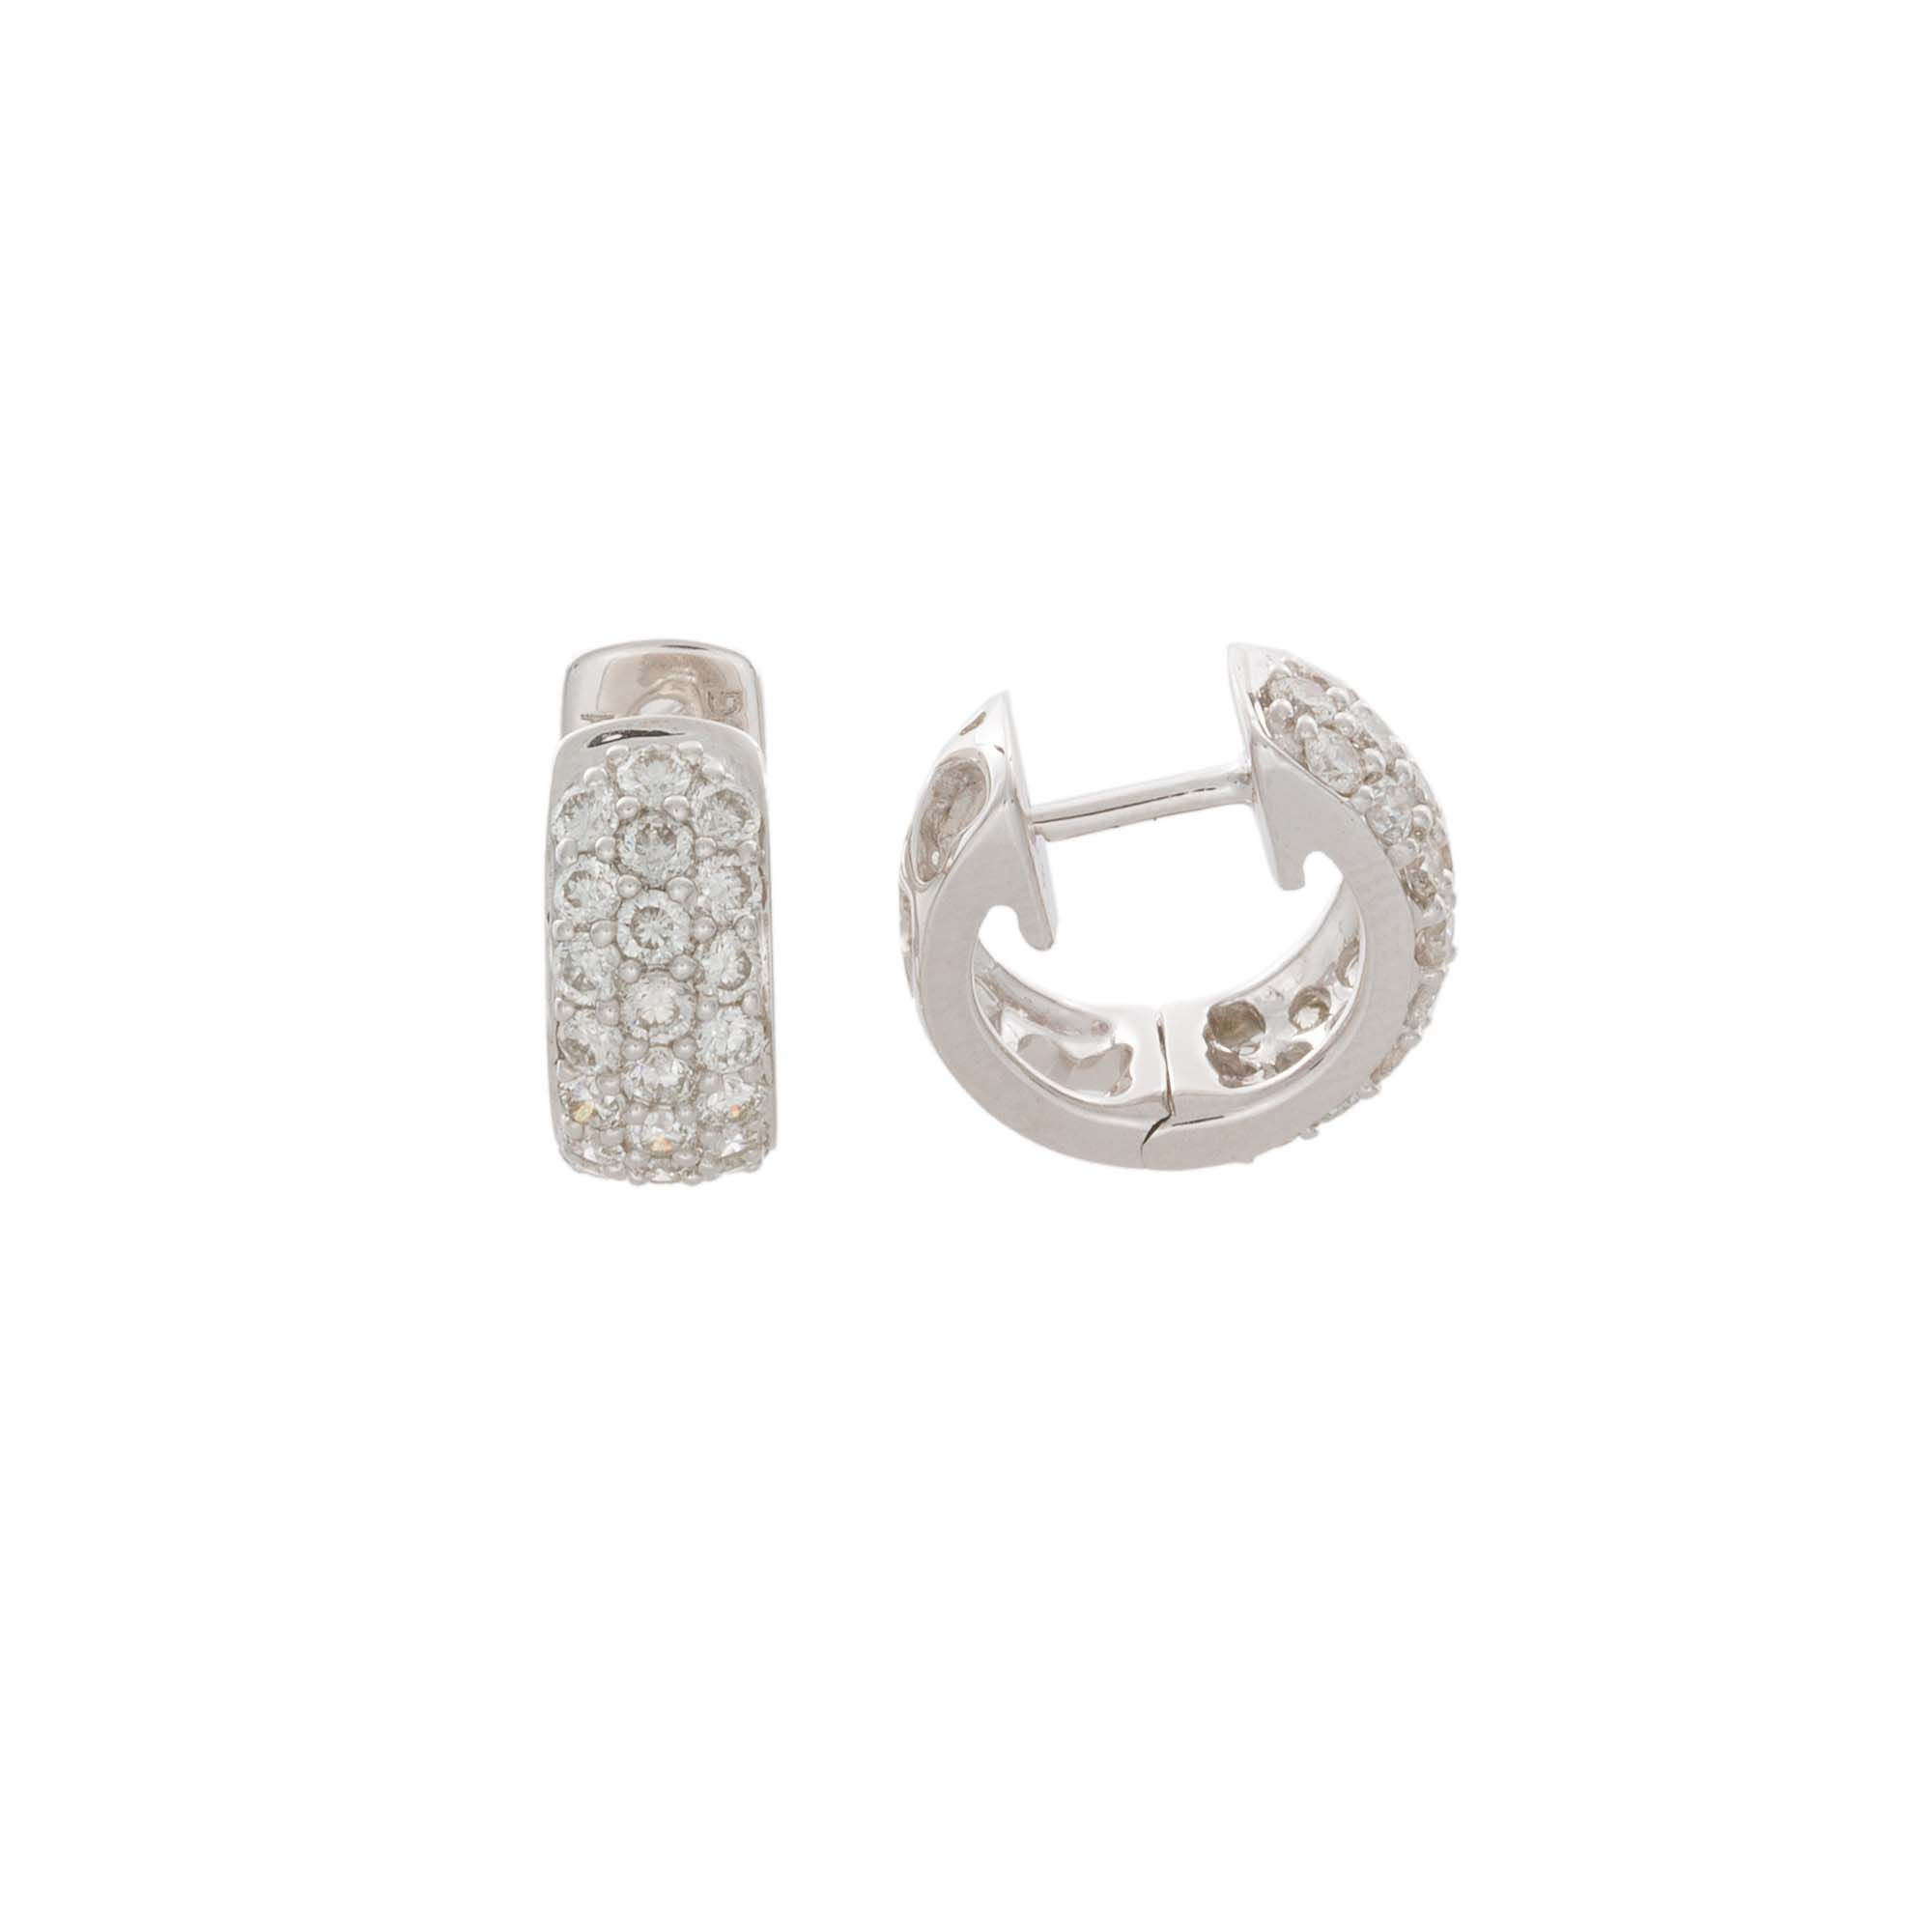 37943465ba06a London Collection 18k White Gold Pave diamond Huggie Earrings